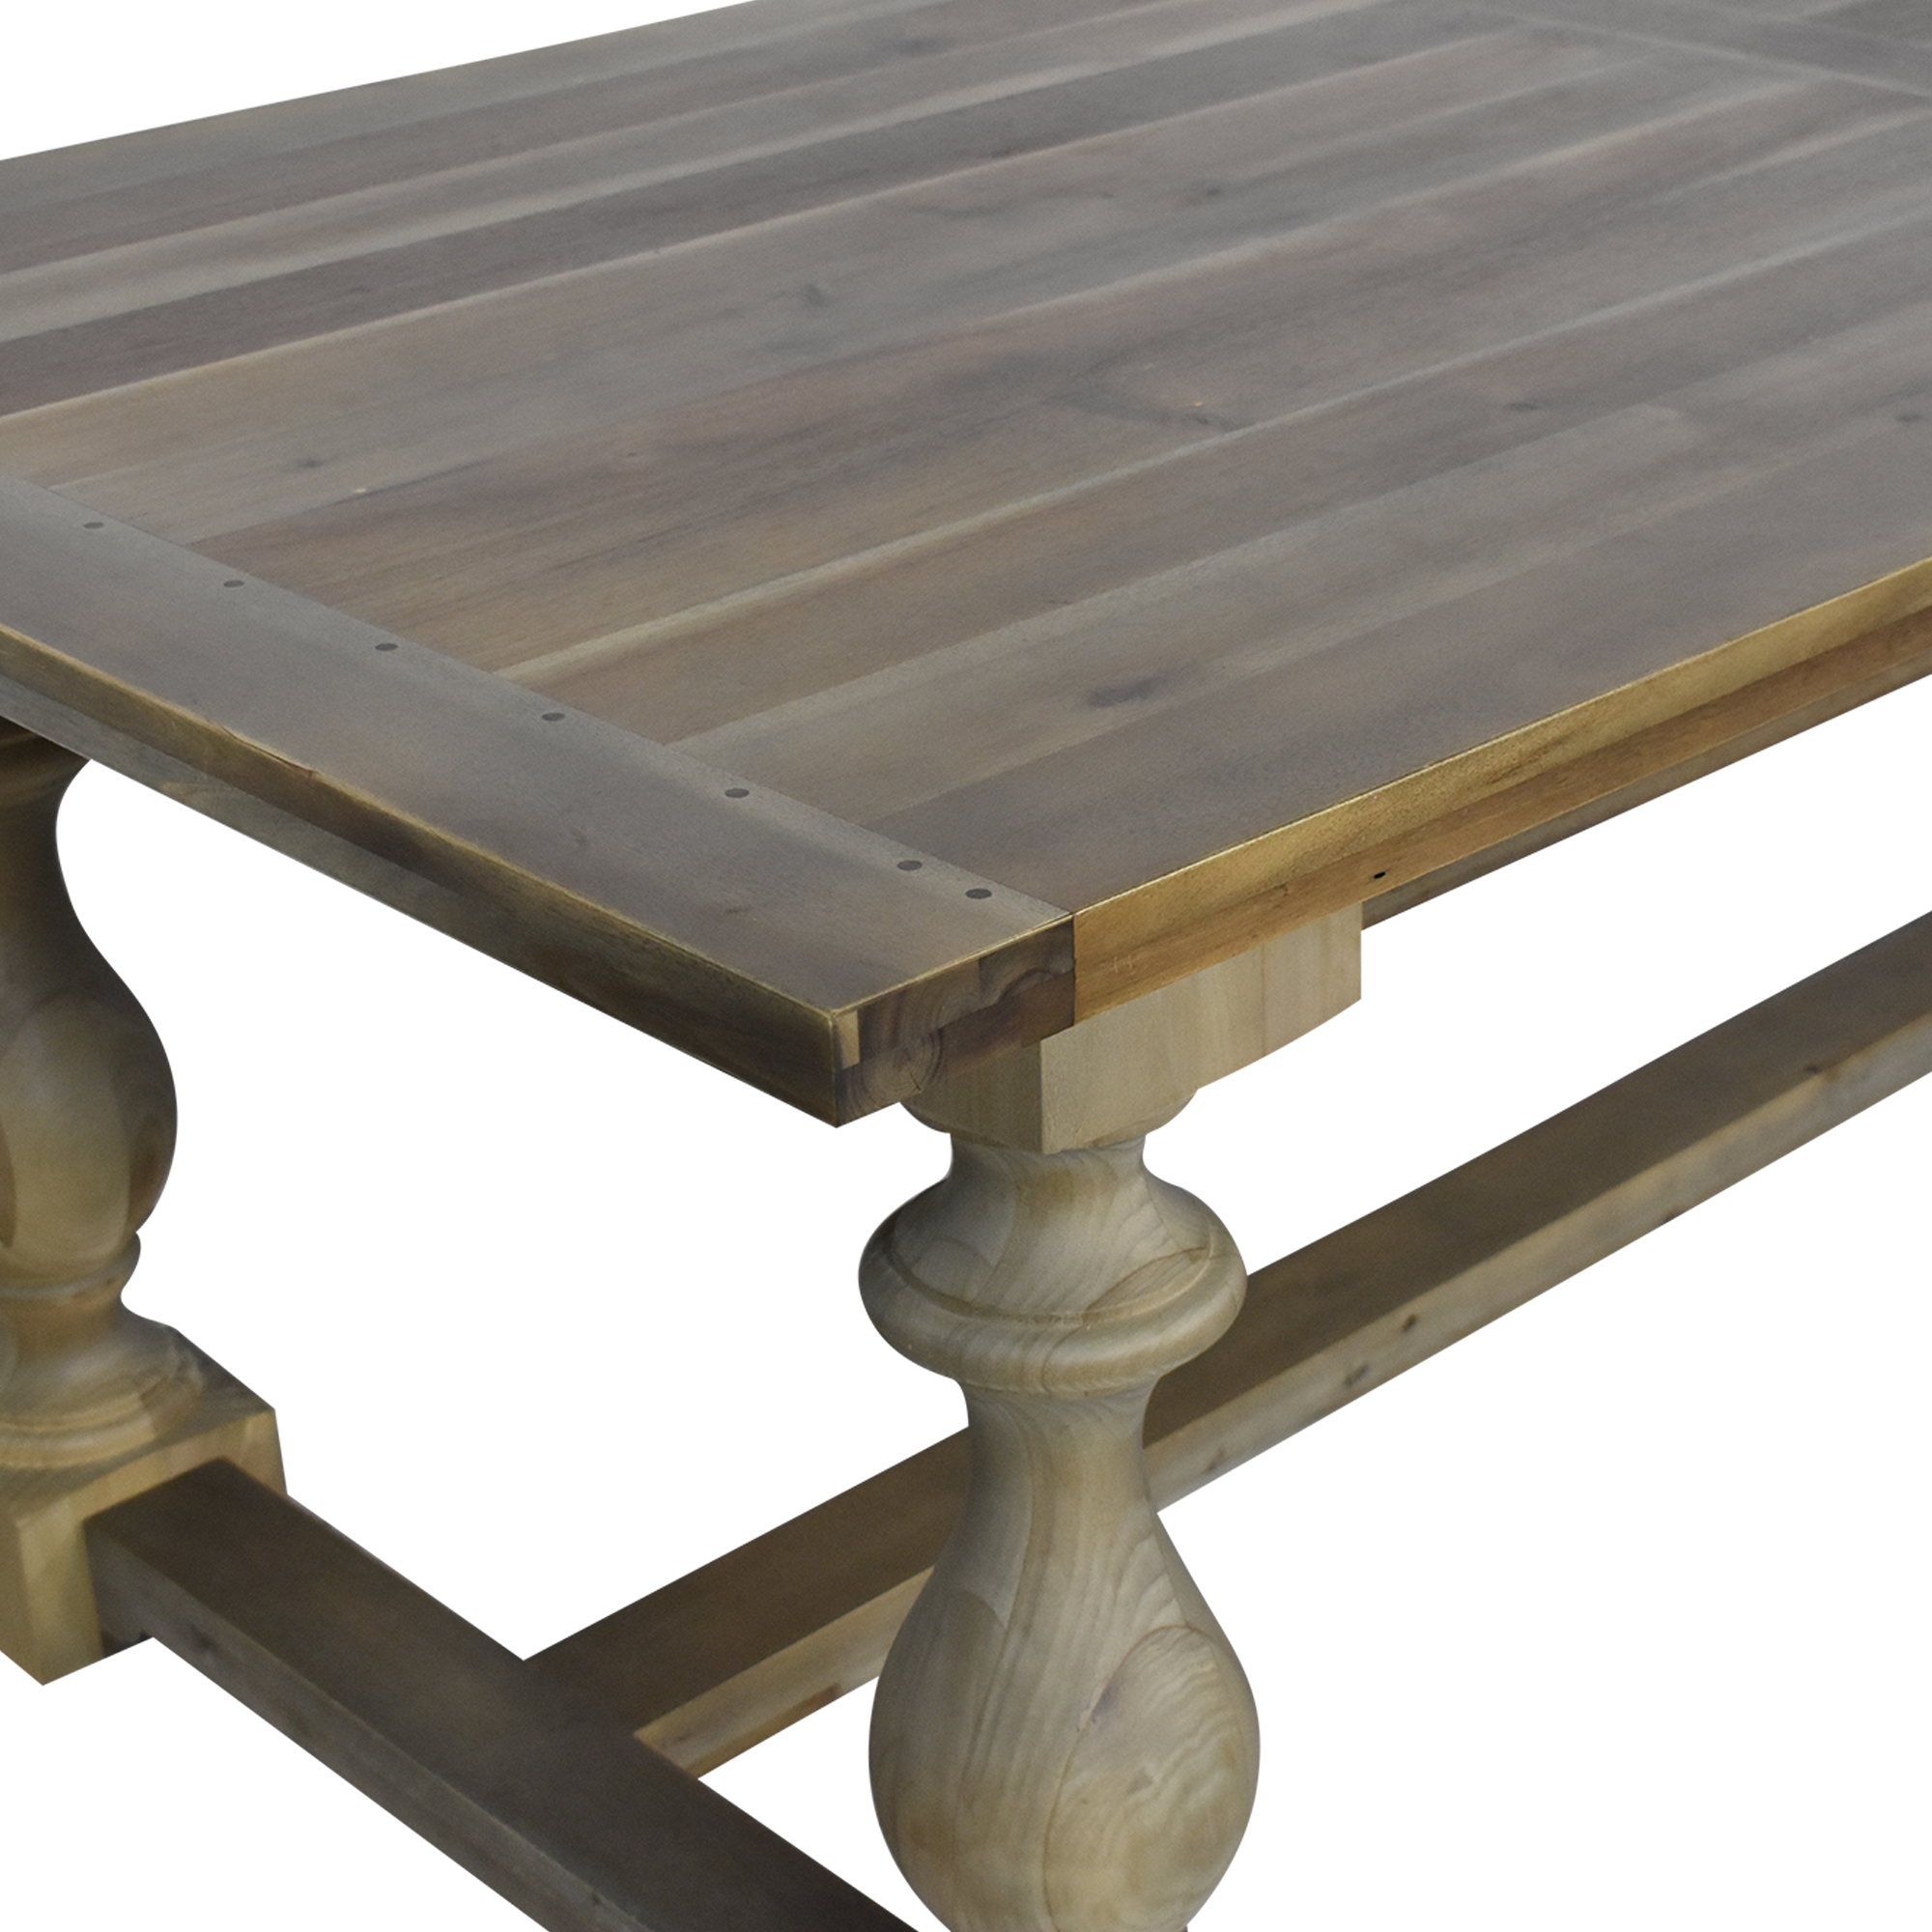 Restoration Hardware Restoration Hardware 17TH C. Monastery Rectangular Dining Table price